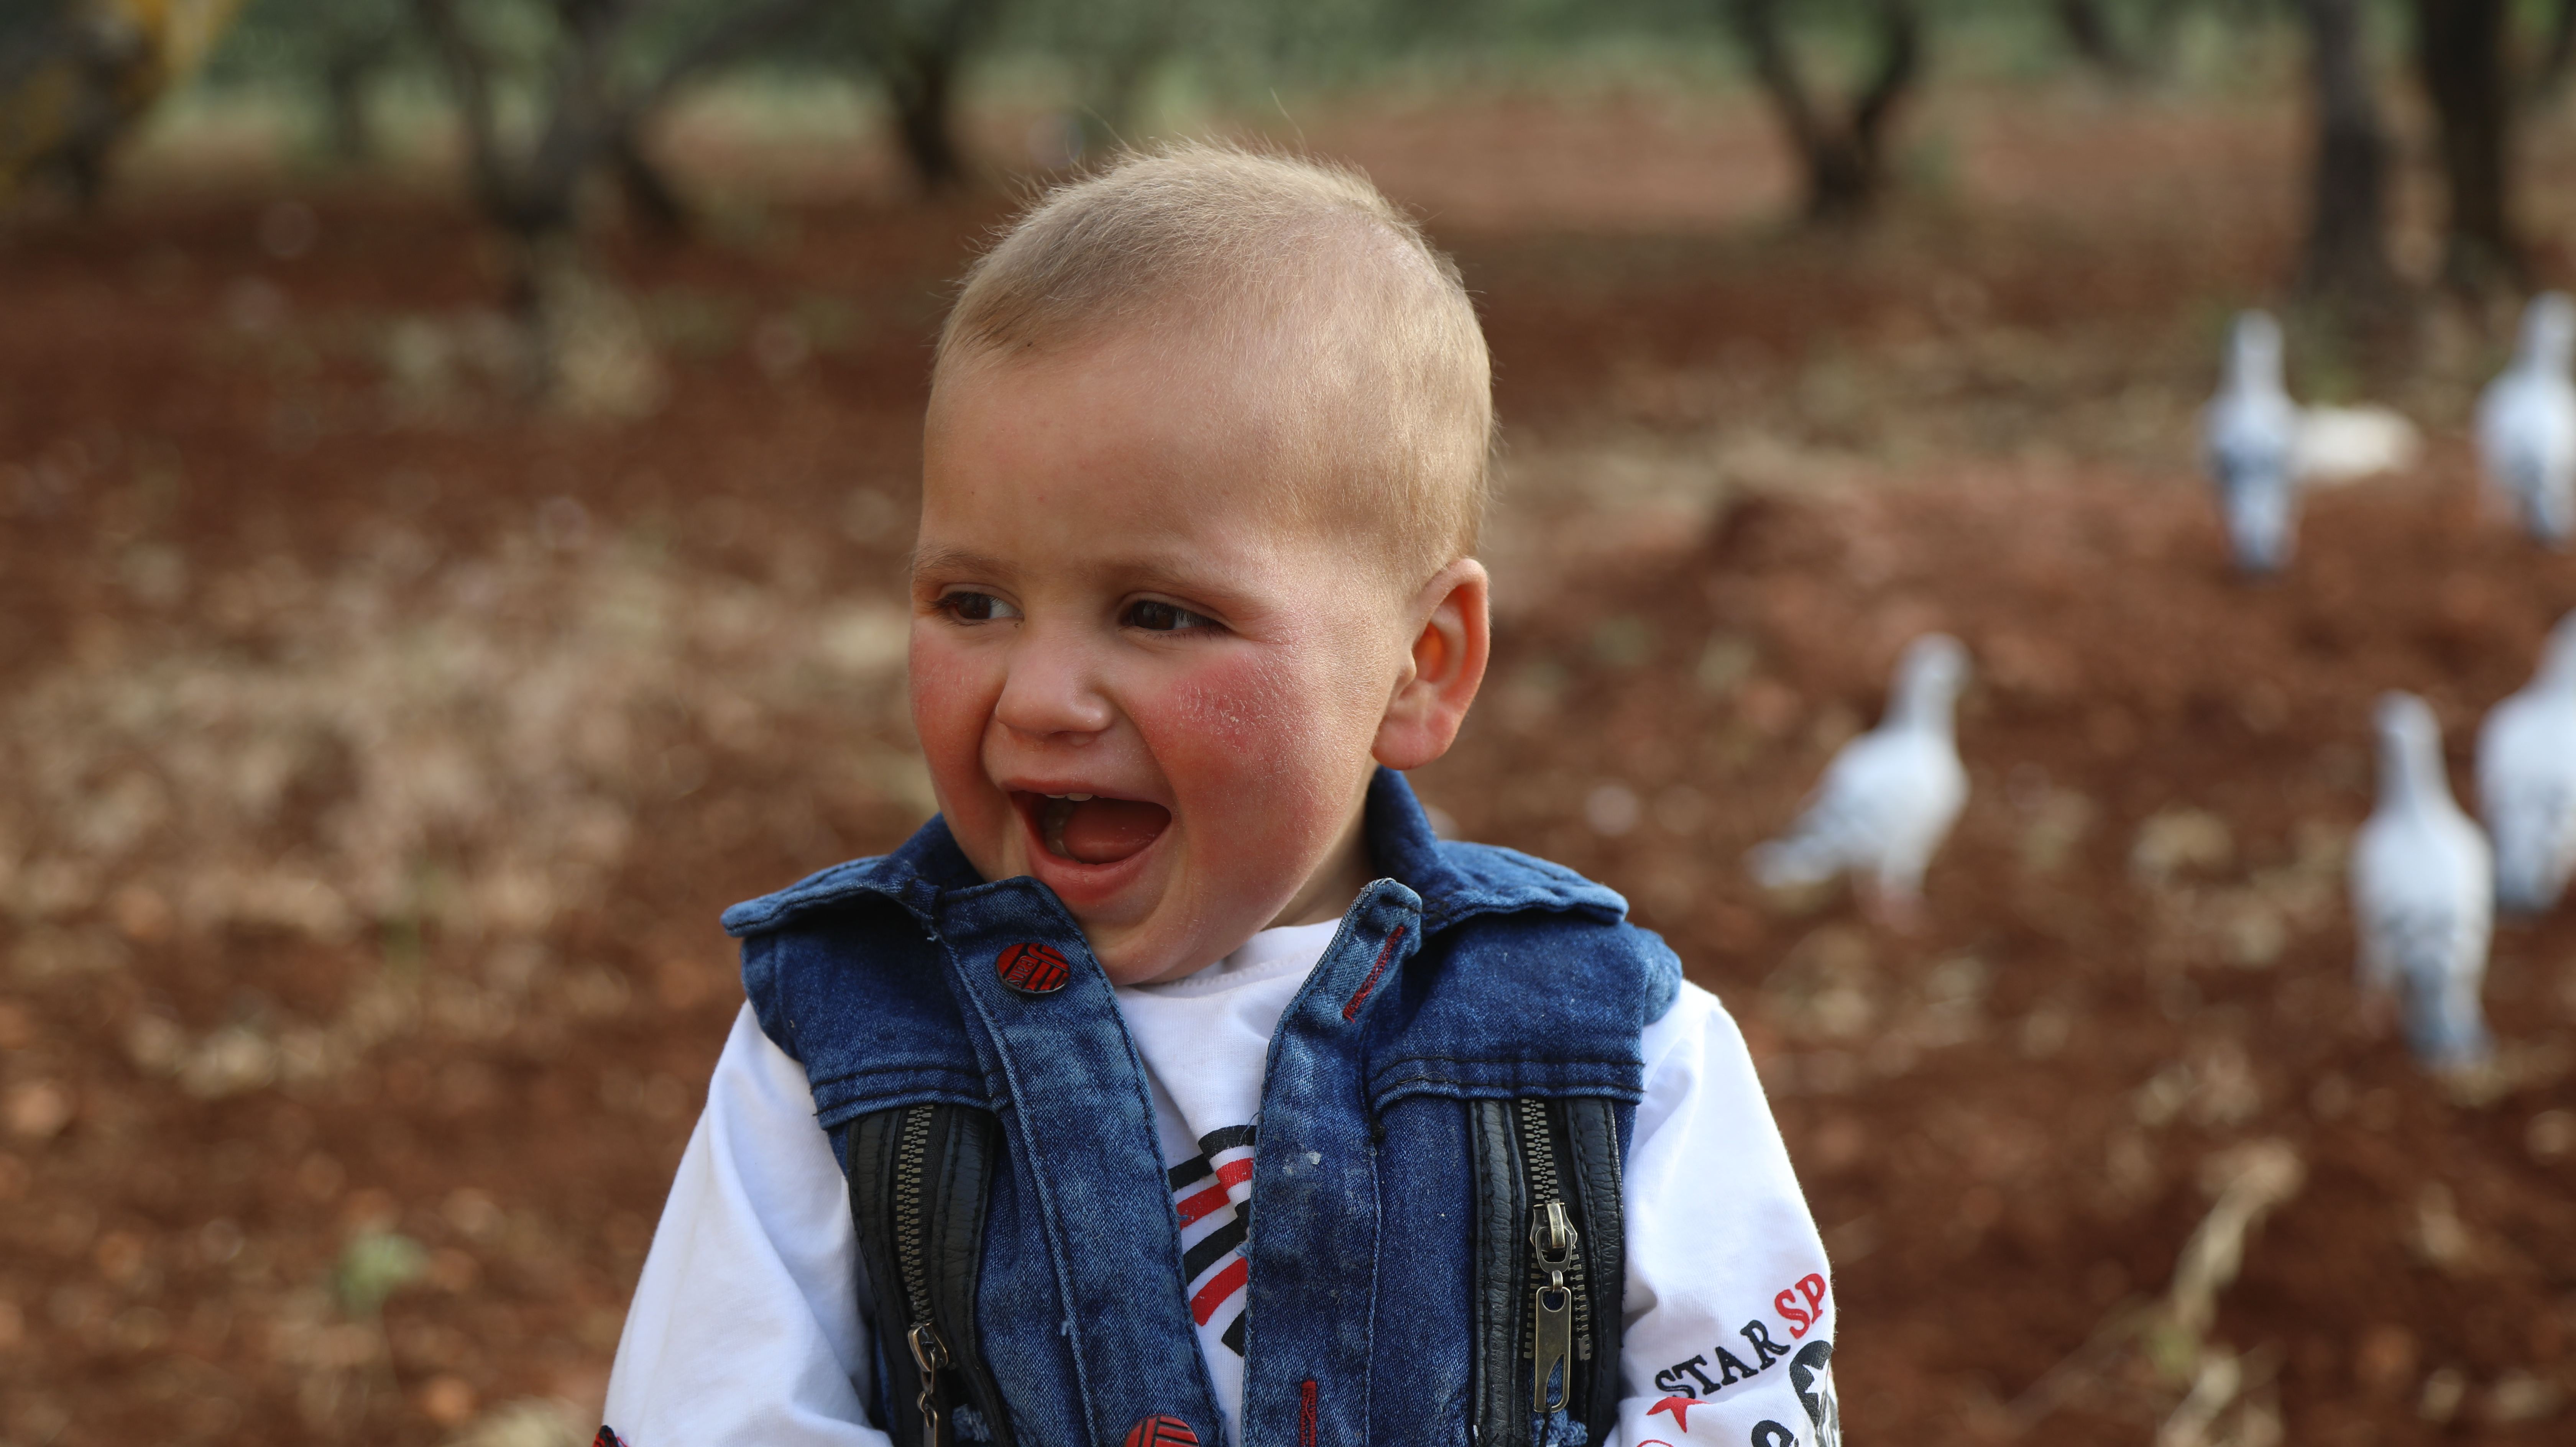 child in syria smiling